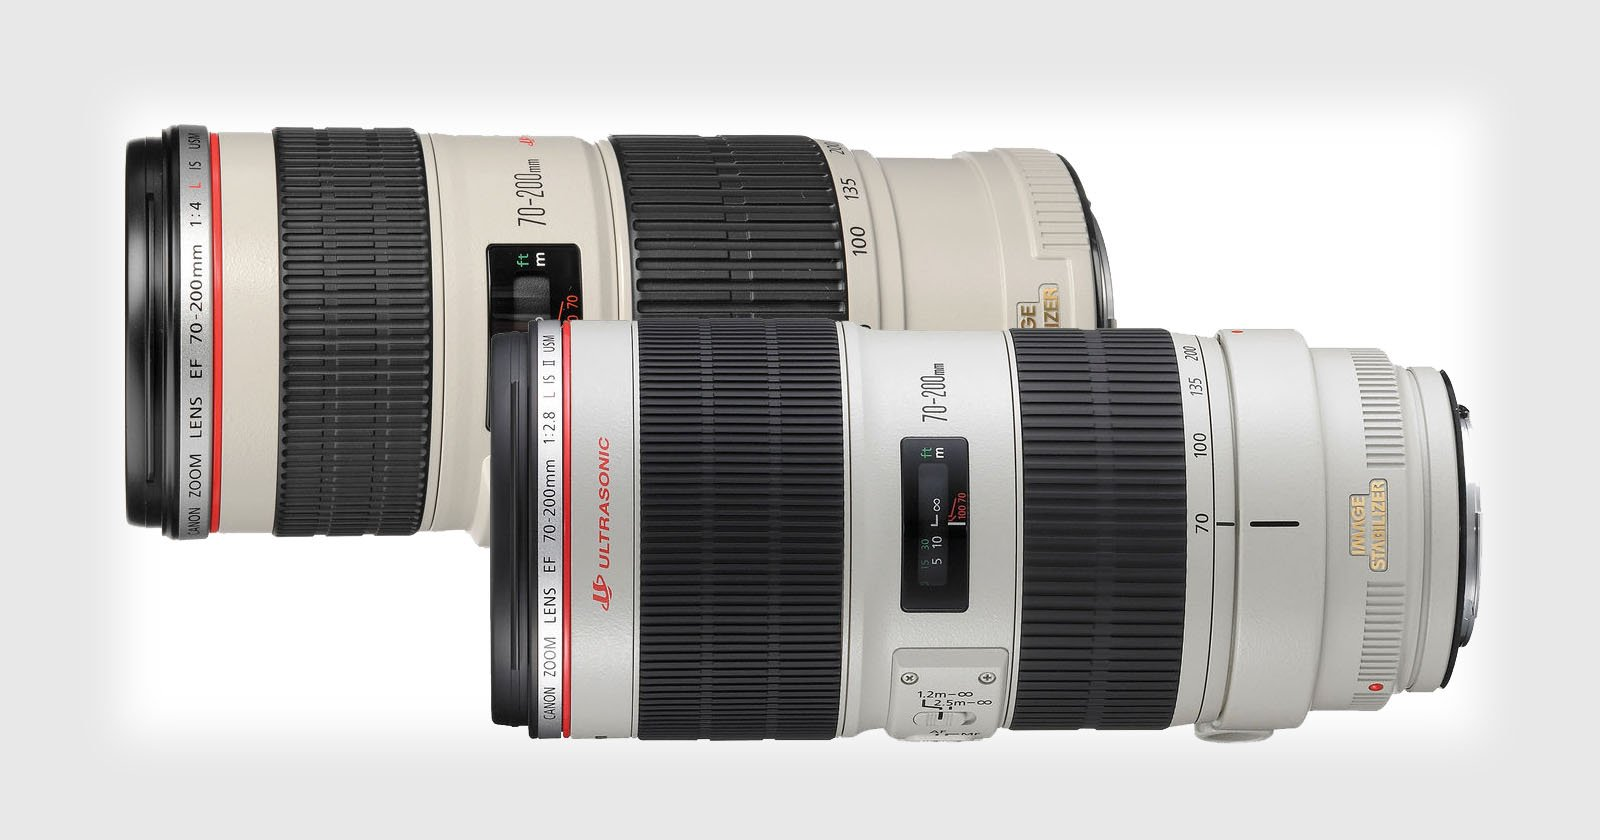 Canon to Unveil Two New 70-200mm Lenses Next Month: Report